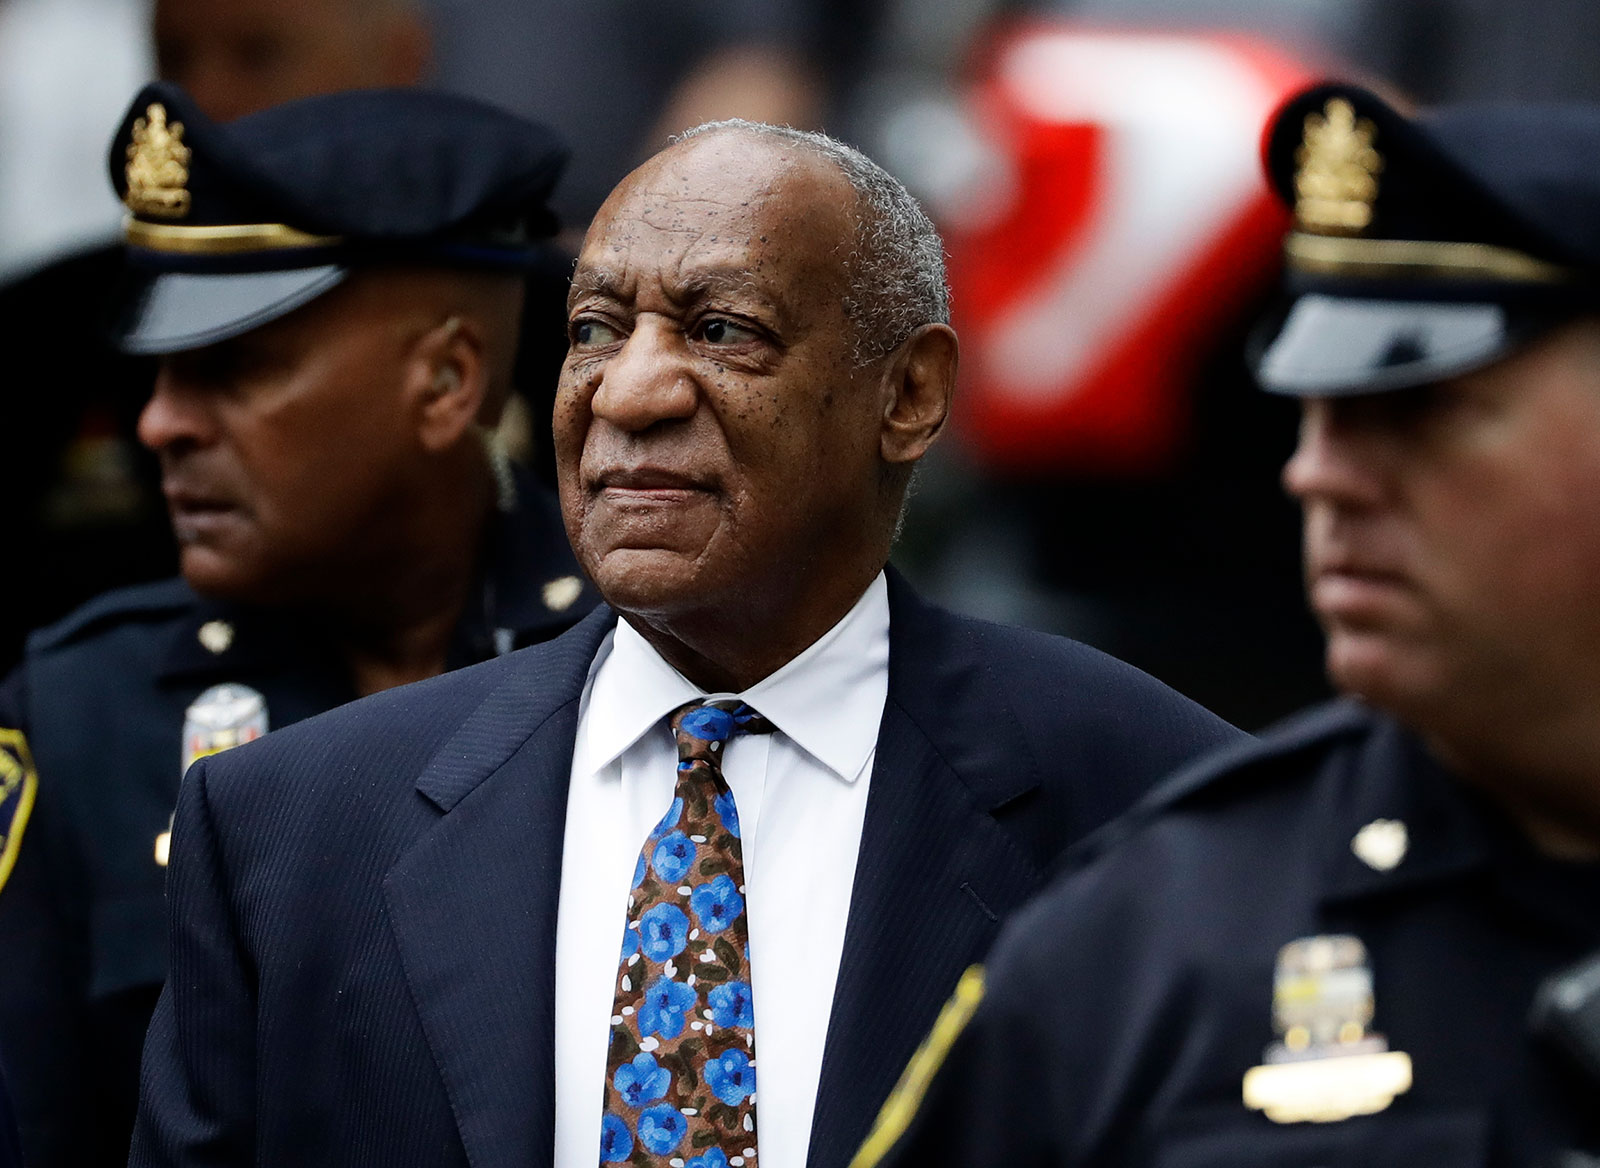 Bill Cosby arrives at the Montgomery County courthouse for his sentencing hearing in 2018.